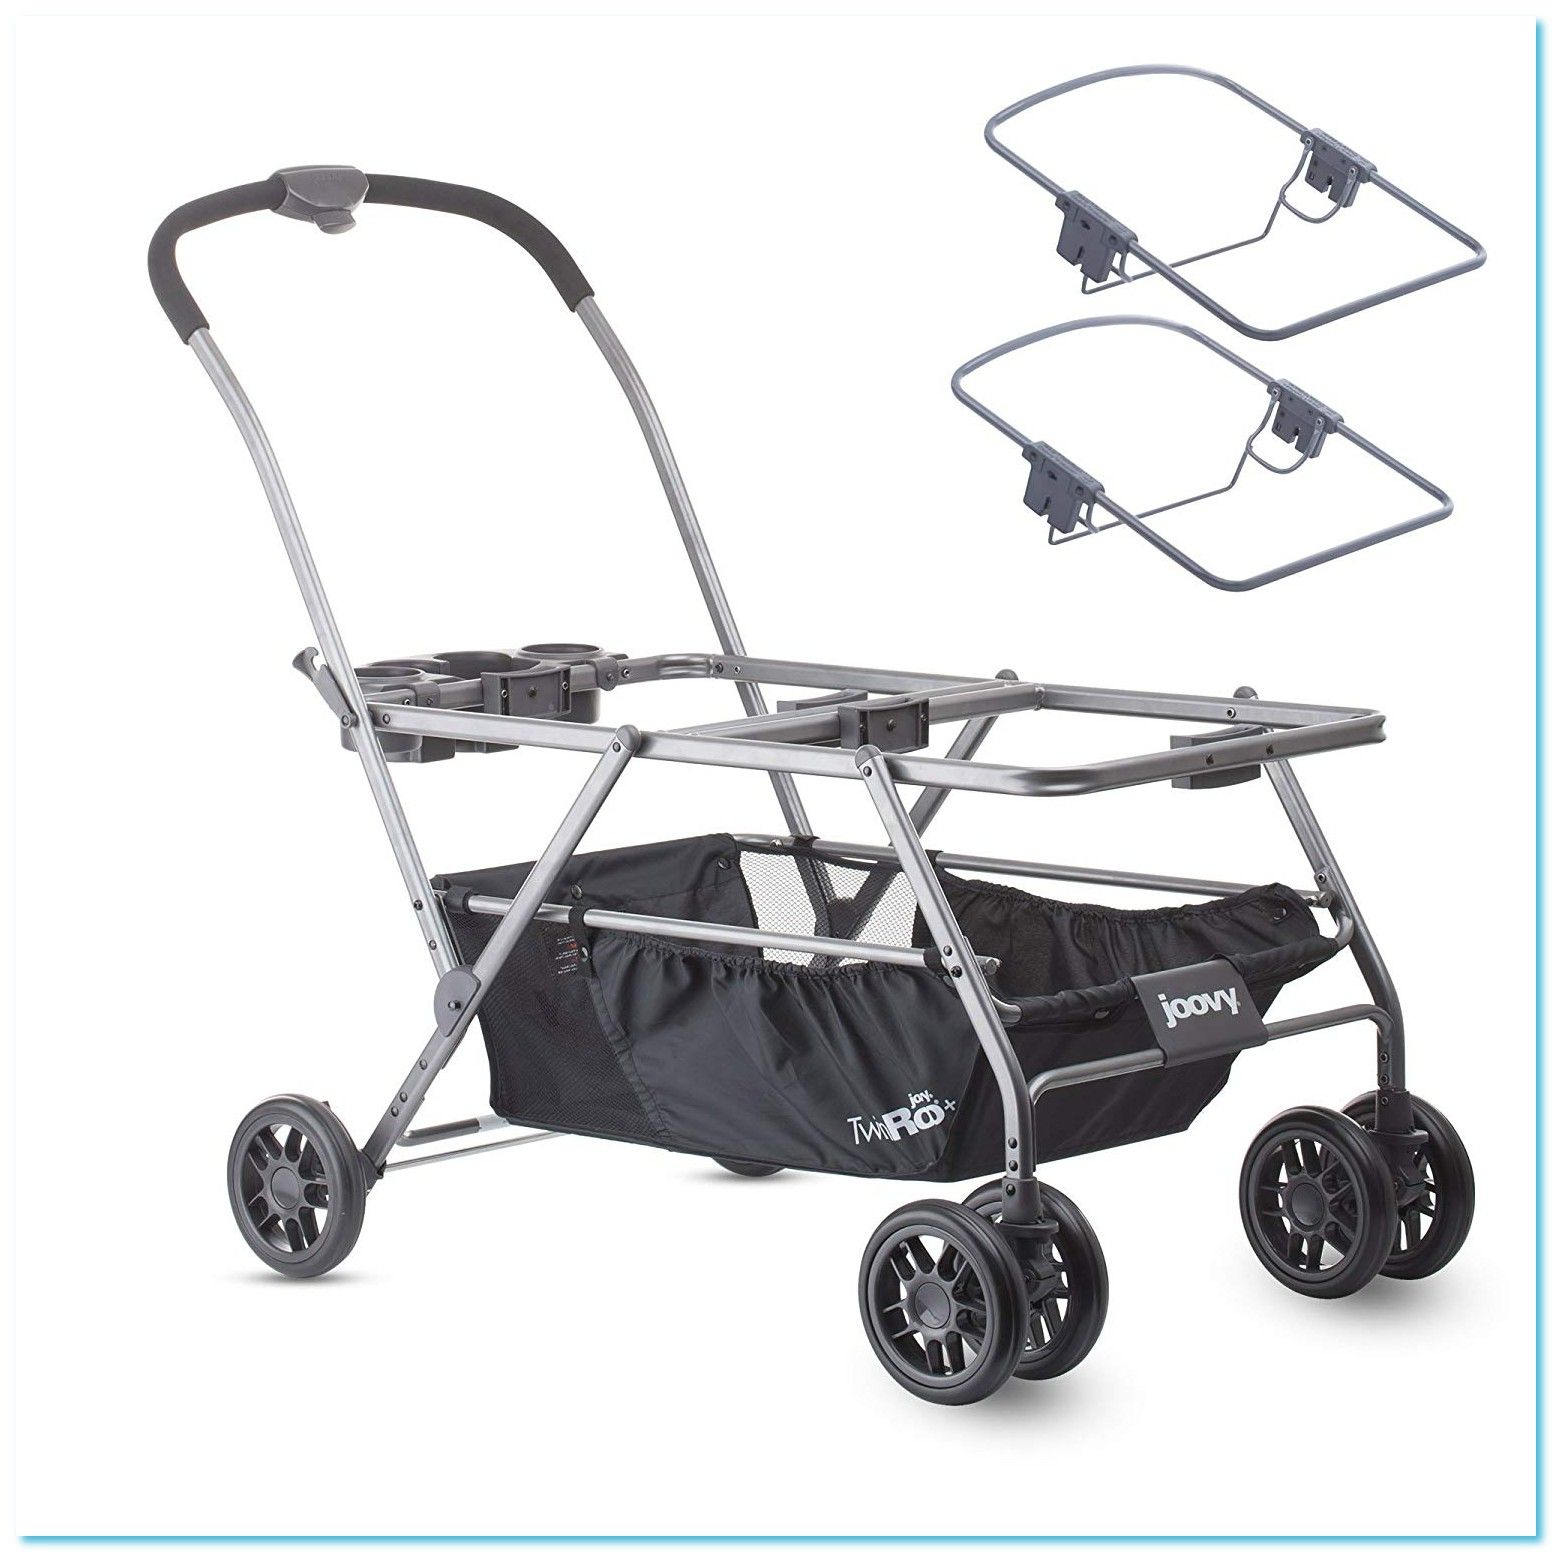 Pin on baby stroller car seat playpen combo